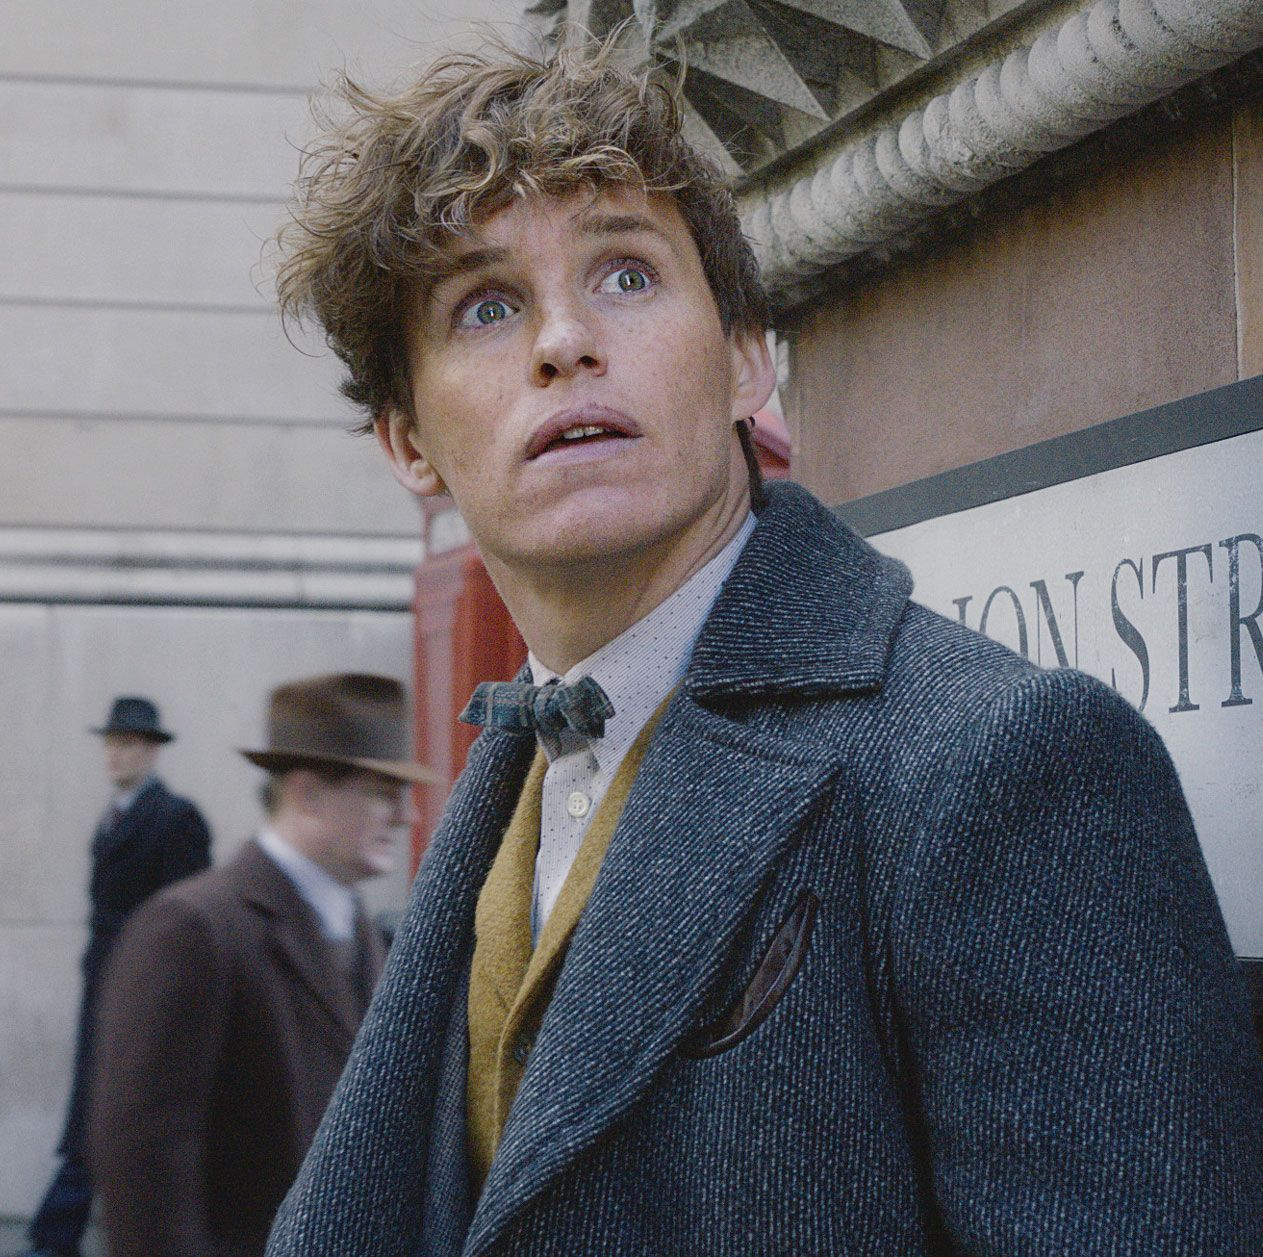 No, Fantastic Beasts 3 hasn't been delayed – and here's why